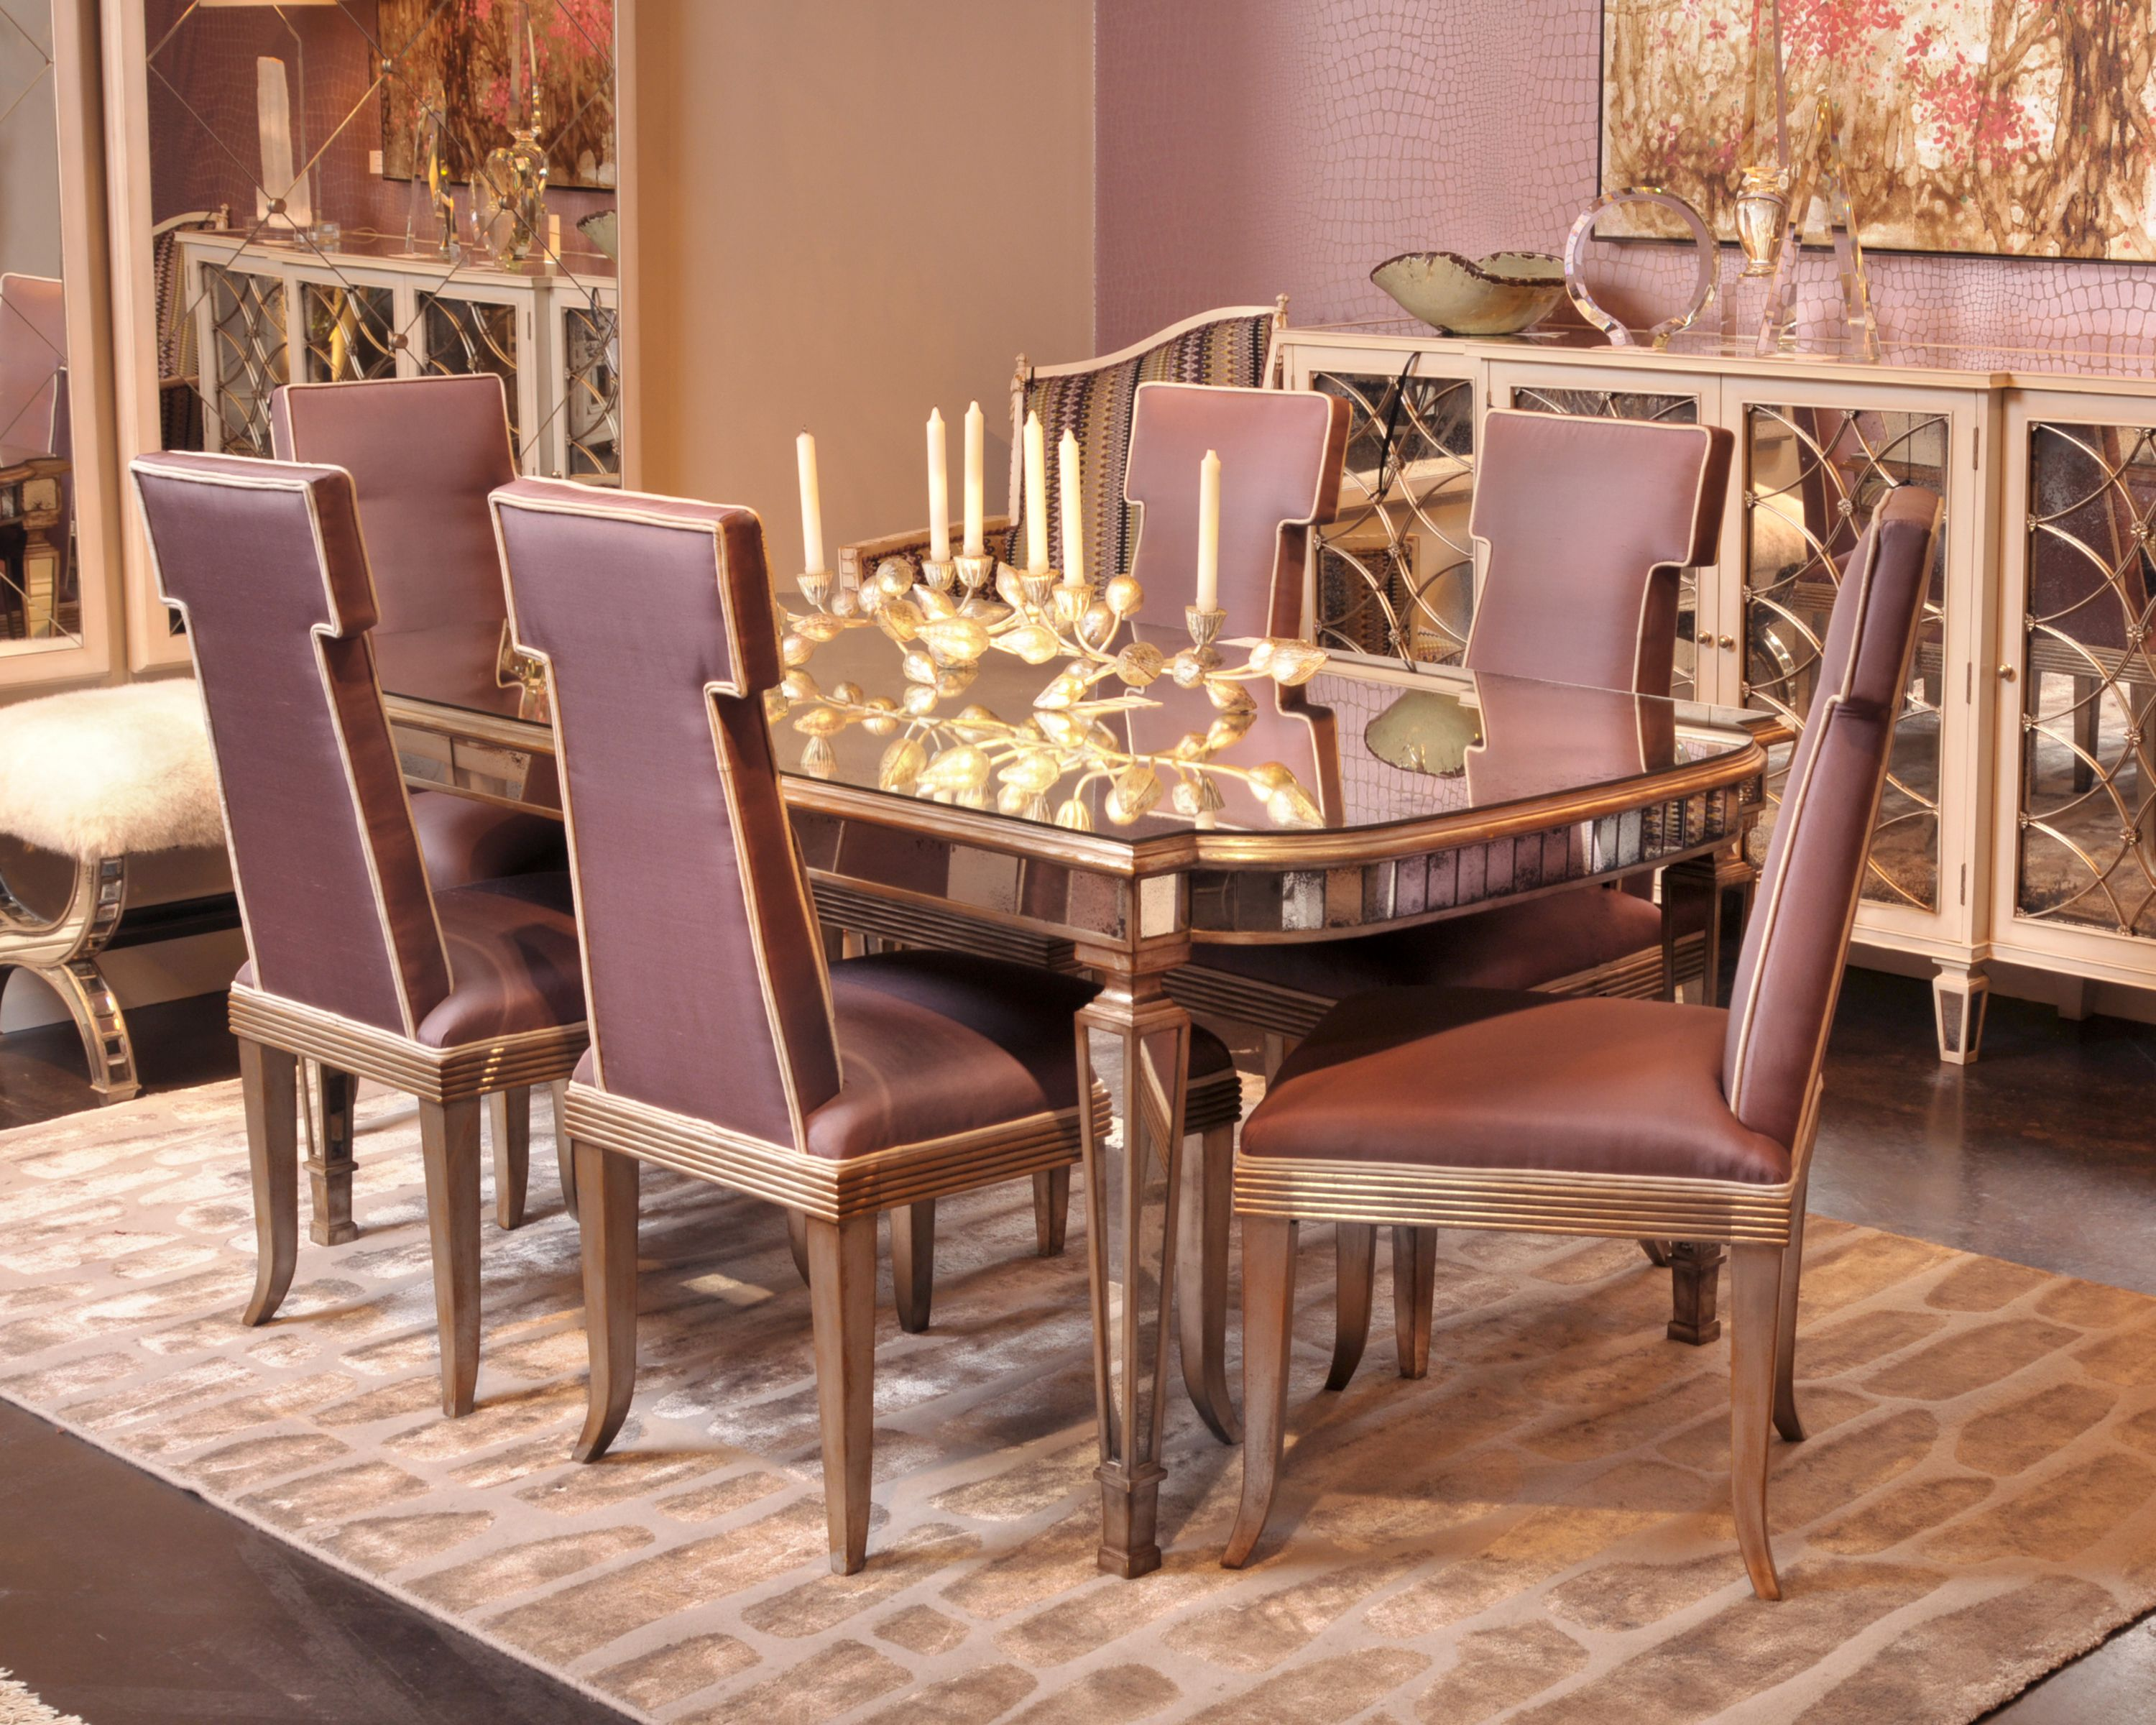 The John Richard Bourbon Dining Table Has A Foxed Mirror Top And Apron Rail All Supported By Four Tapered And Mirrored Leg Dining Table Chairs Home Decor Home